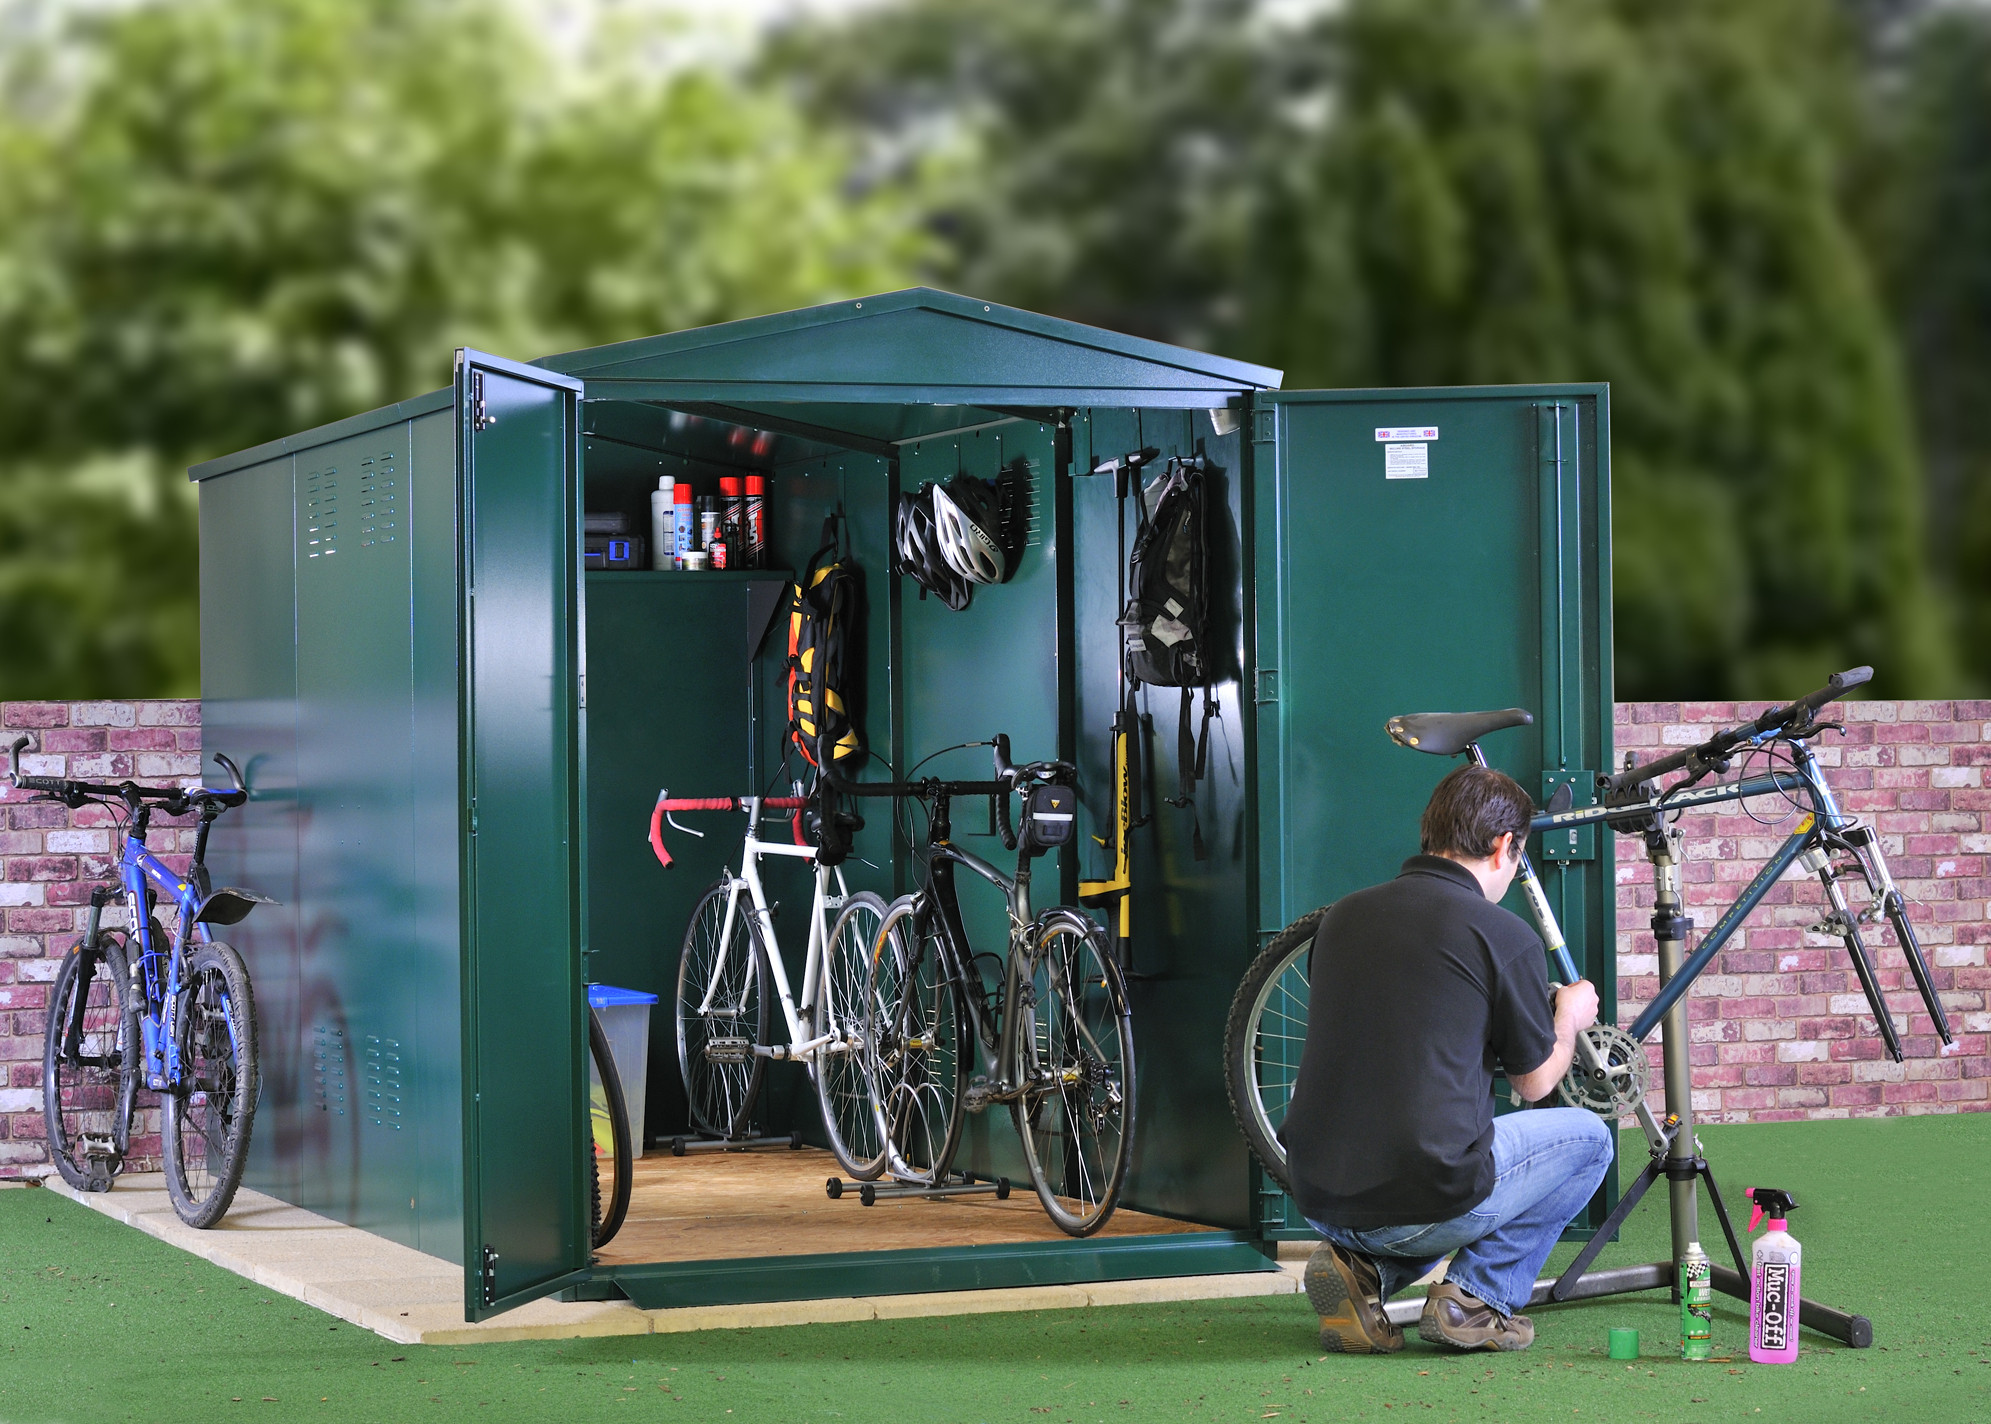 Beautiful bike shed metal bike storage - secured by design - police approved specification ... kyprhqv